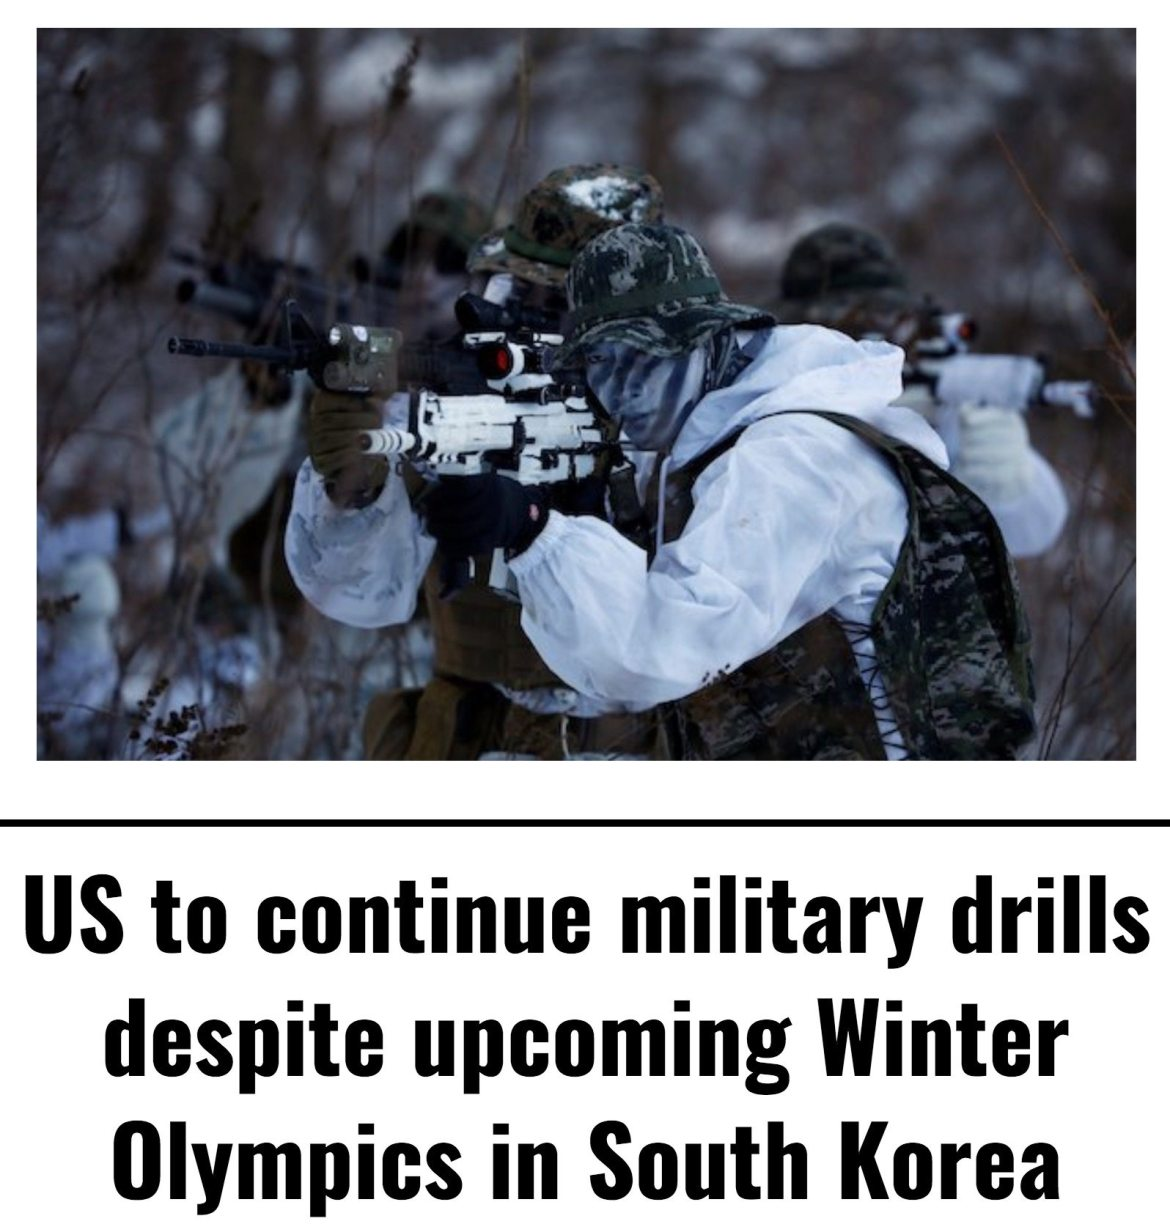 Image Lima Charlie News Headline US to continue military drills despite upcoming Winter Olympics in South Korea